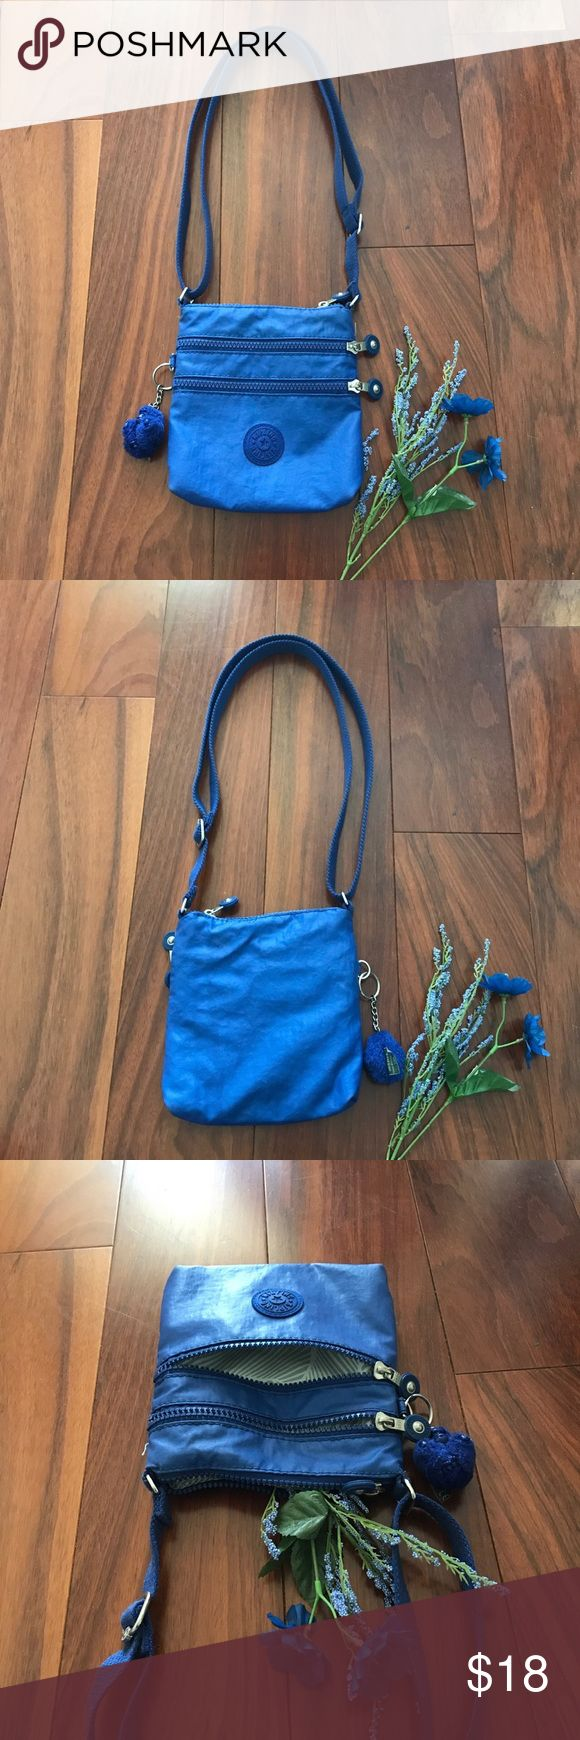 Blue Kipling Petite Bag Super cute and trendy Kipling bag! The perfect summer color, goes with anything and just adds a beautiful accessory to whatever you're wearing! In perfect condition!! On sale!! 🦋🦋 Kipling Bags Shoulder Bags